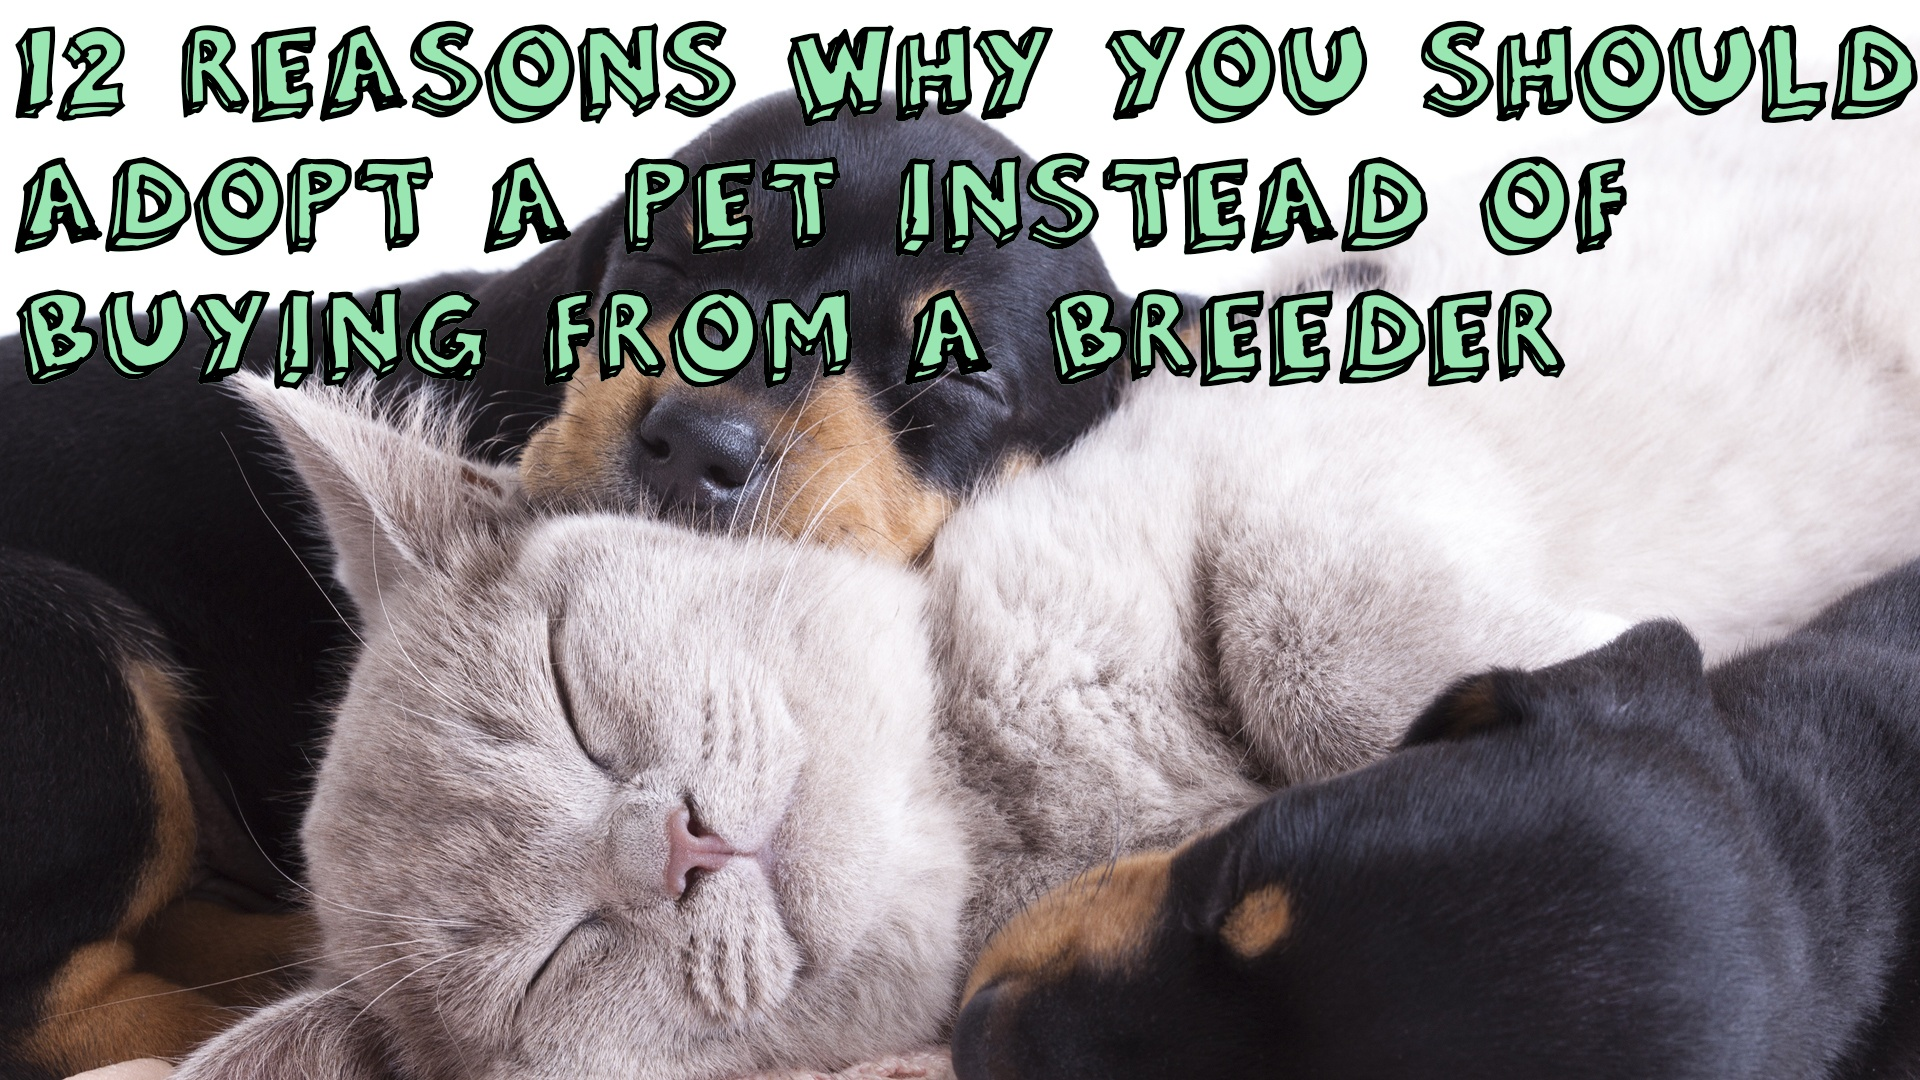 12 Reasons Why You Should Adopt A Pet Instead Of Buying From A Breeder